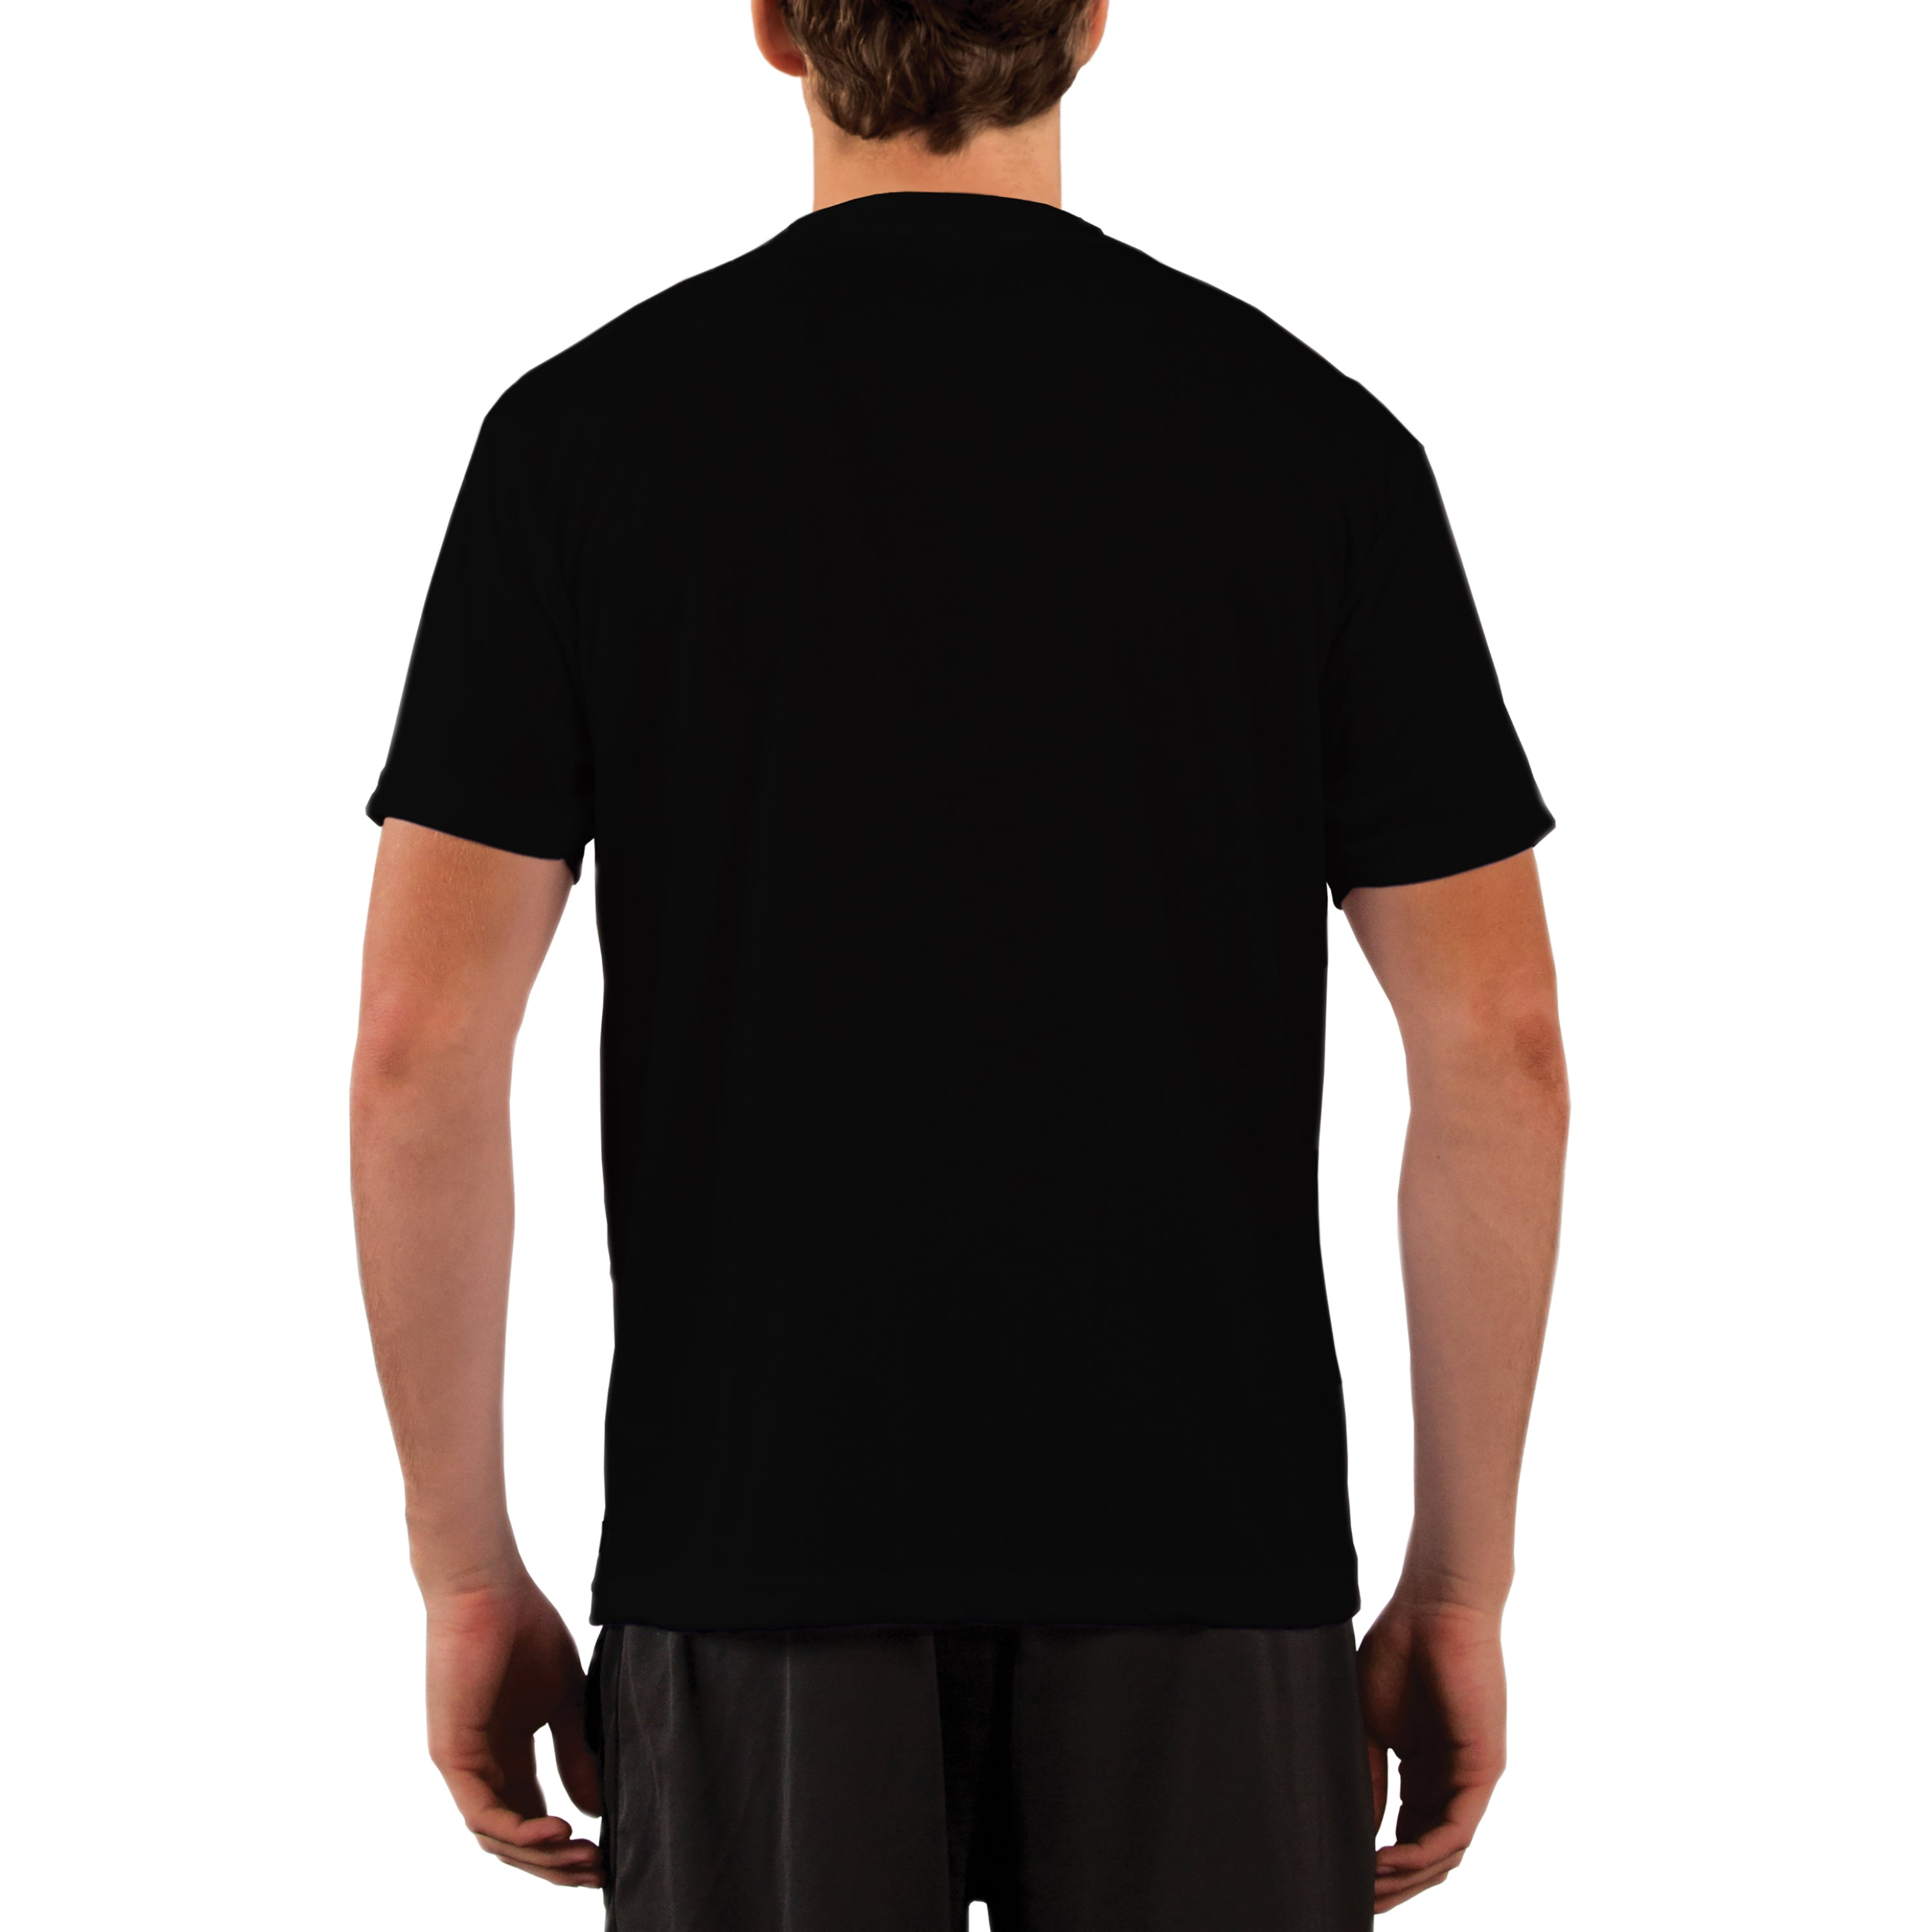 A1SJBBBB Basic Performance T-Shirt - Black